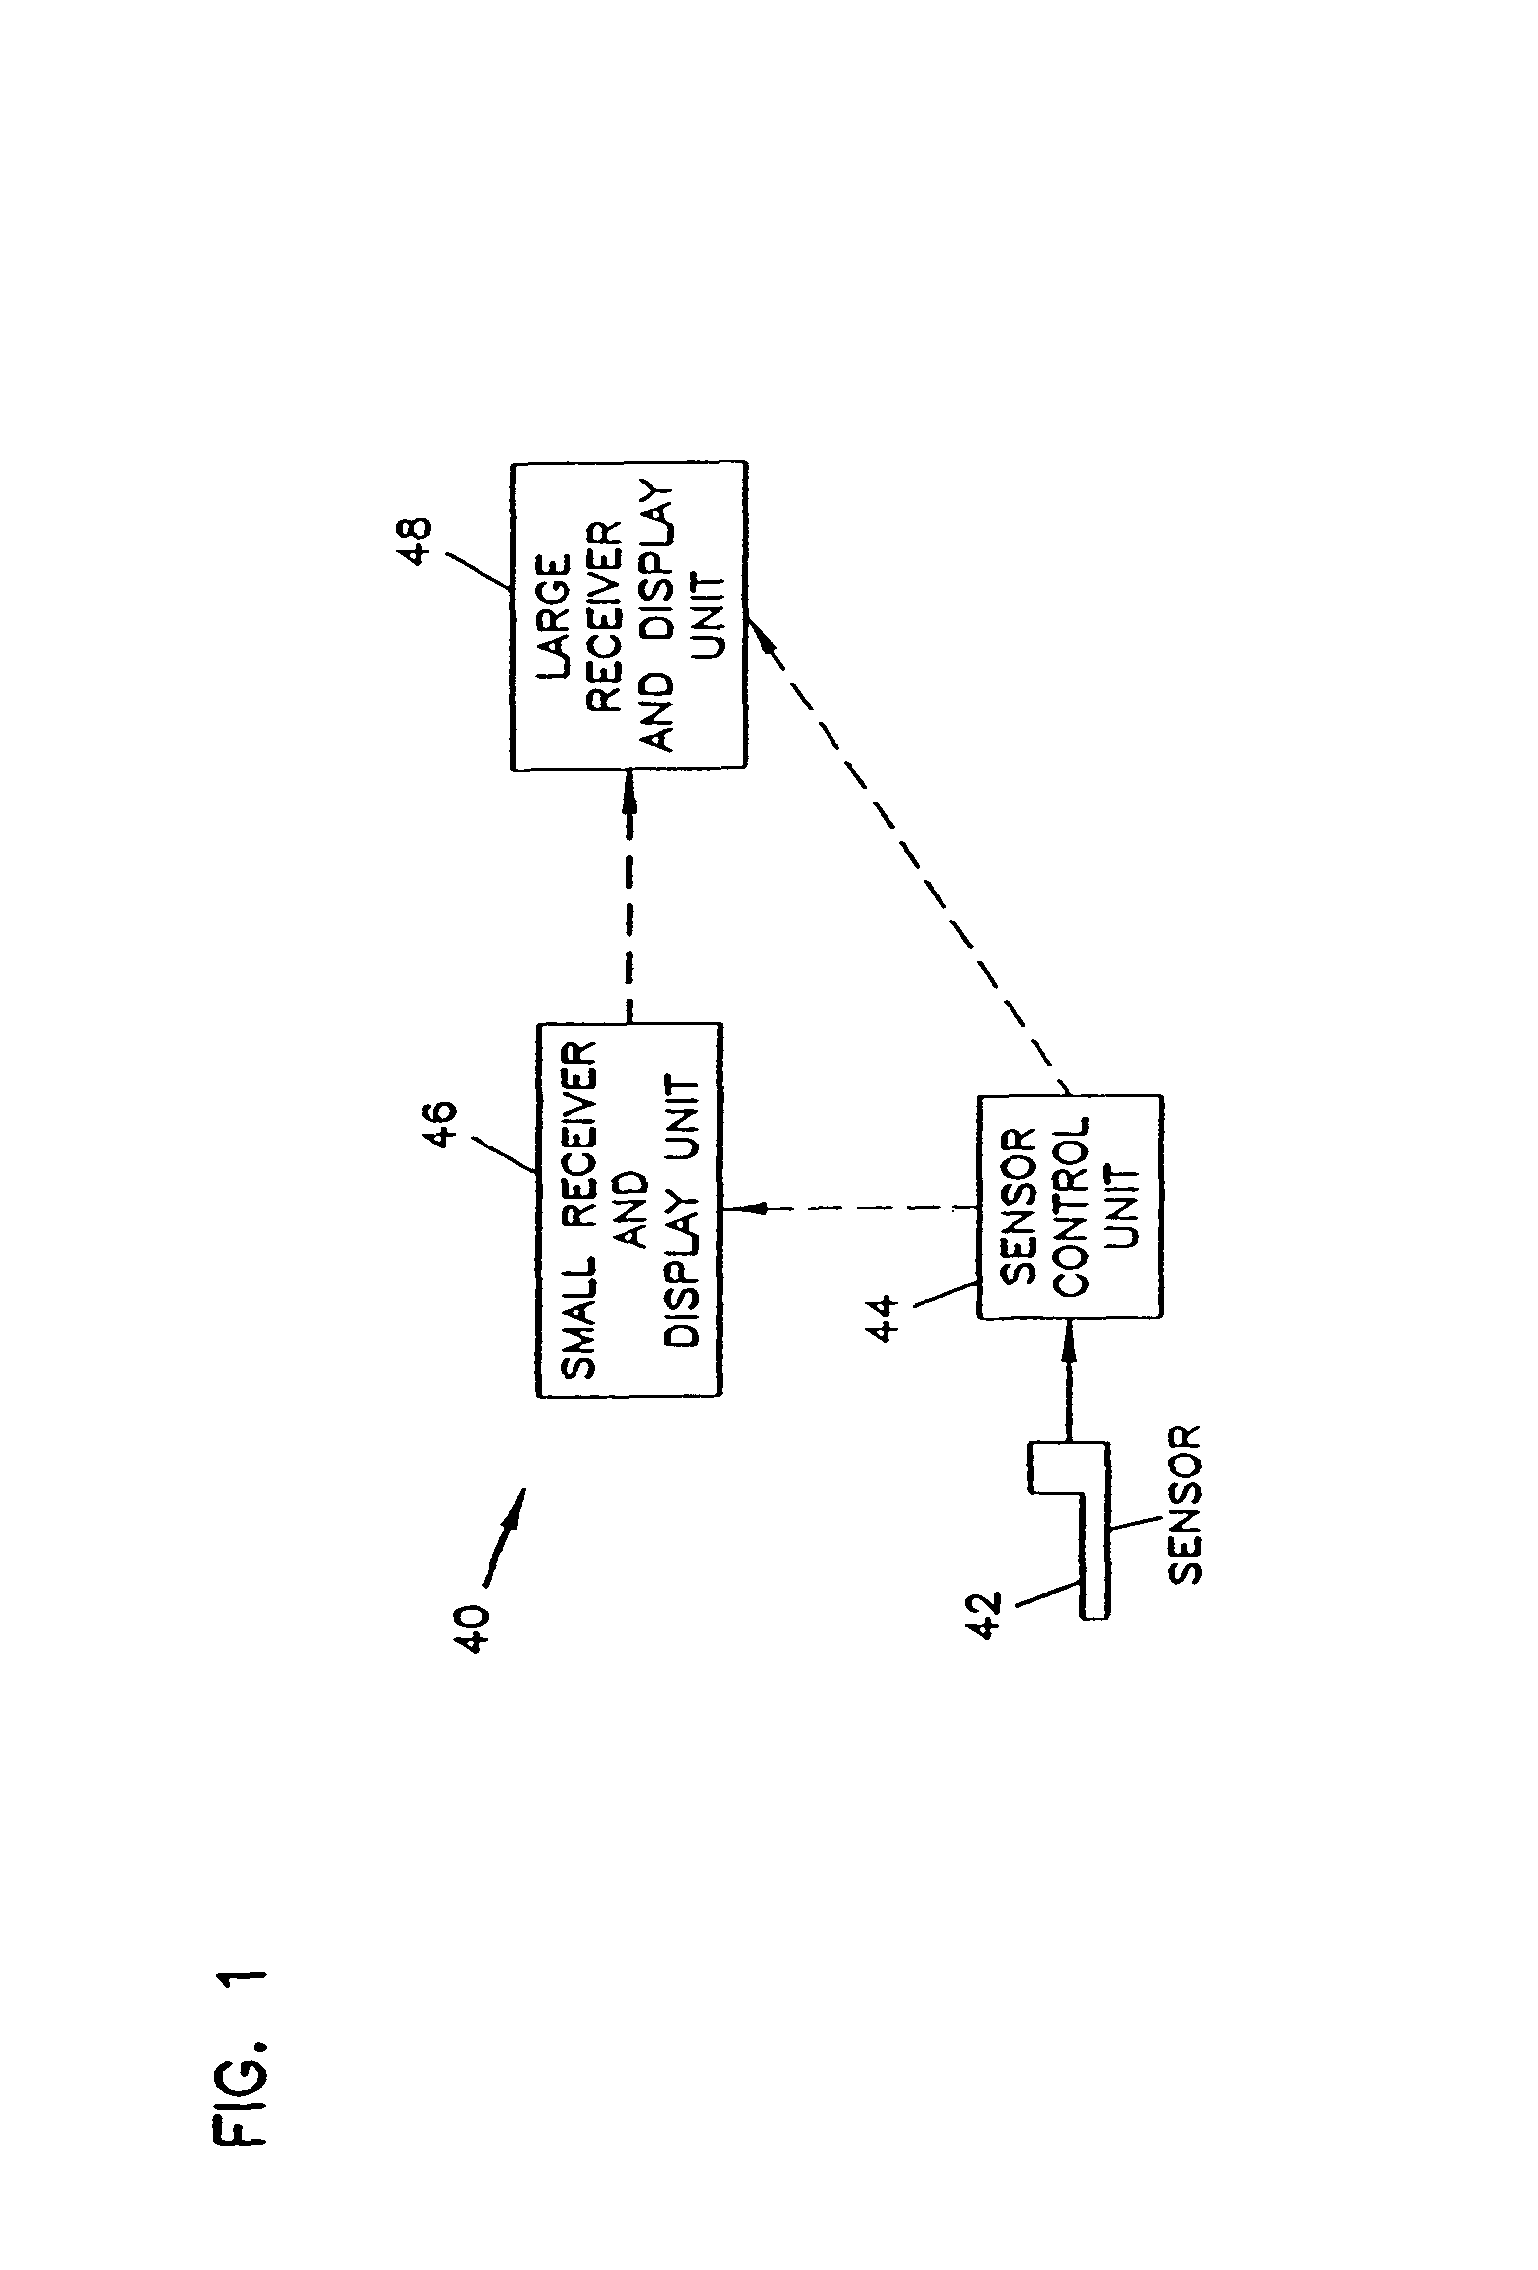 Us8660627b2 Analyte Monitoring Device And Methods Of Use Google Far West Cathodic Rectifier Wiring Diagram Patents